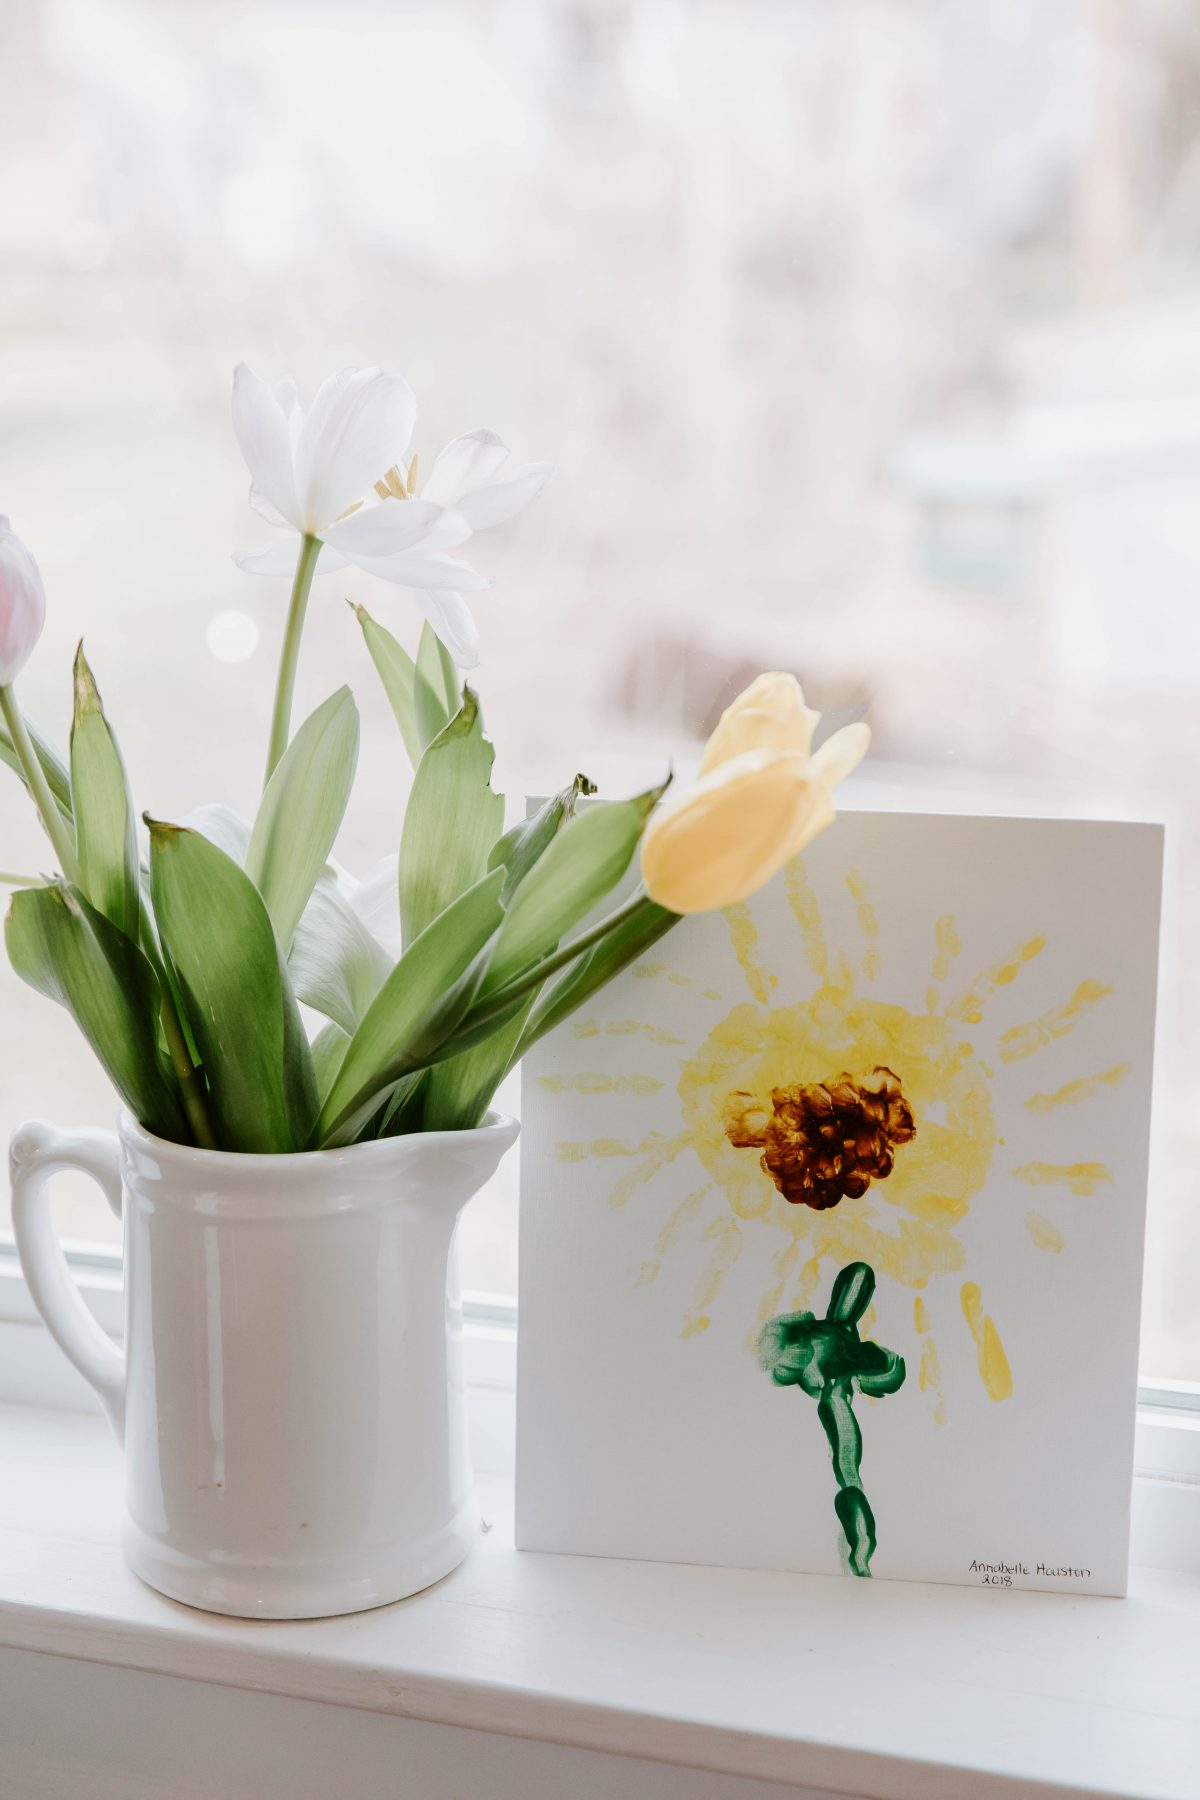 How to make Handprint Flower Canvases for the Spring as a gift for Family, Friends, and Loved Ones